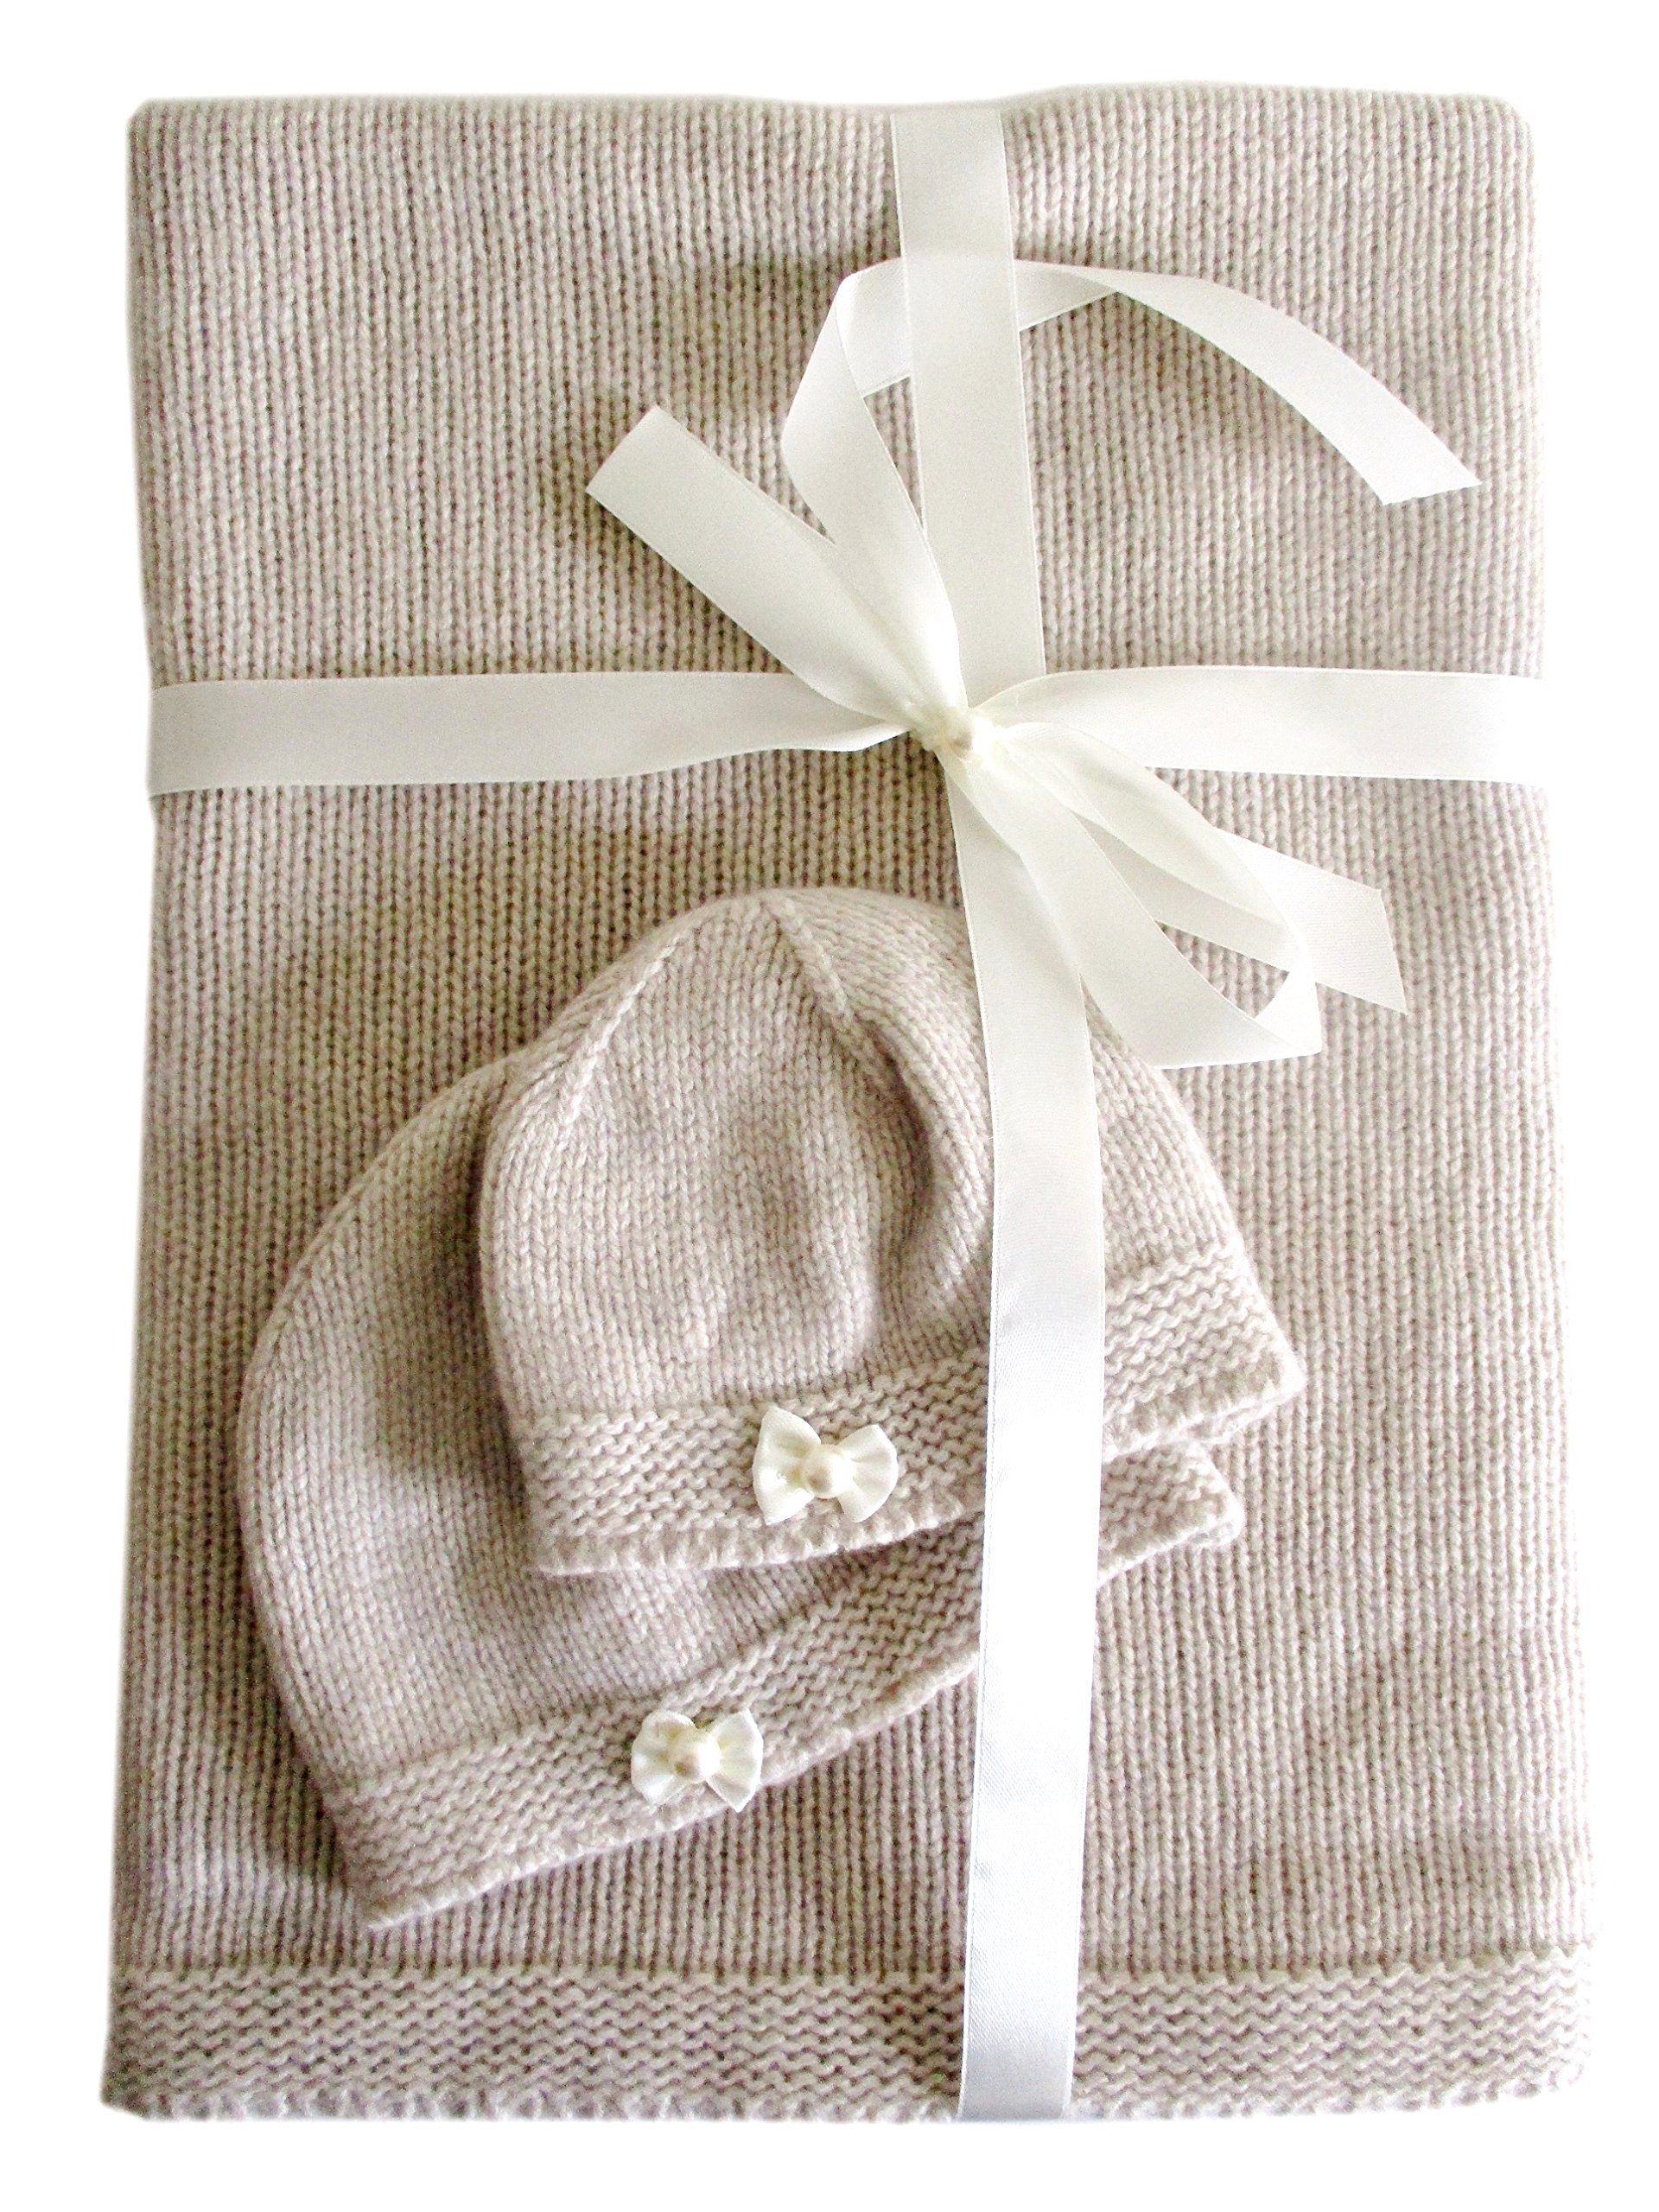 Frost Hats Cashmere Baby Blanket and Hats Set Little Bows Beige